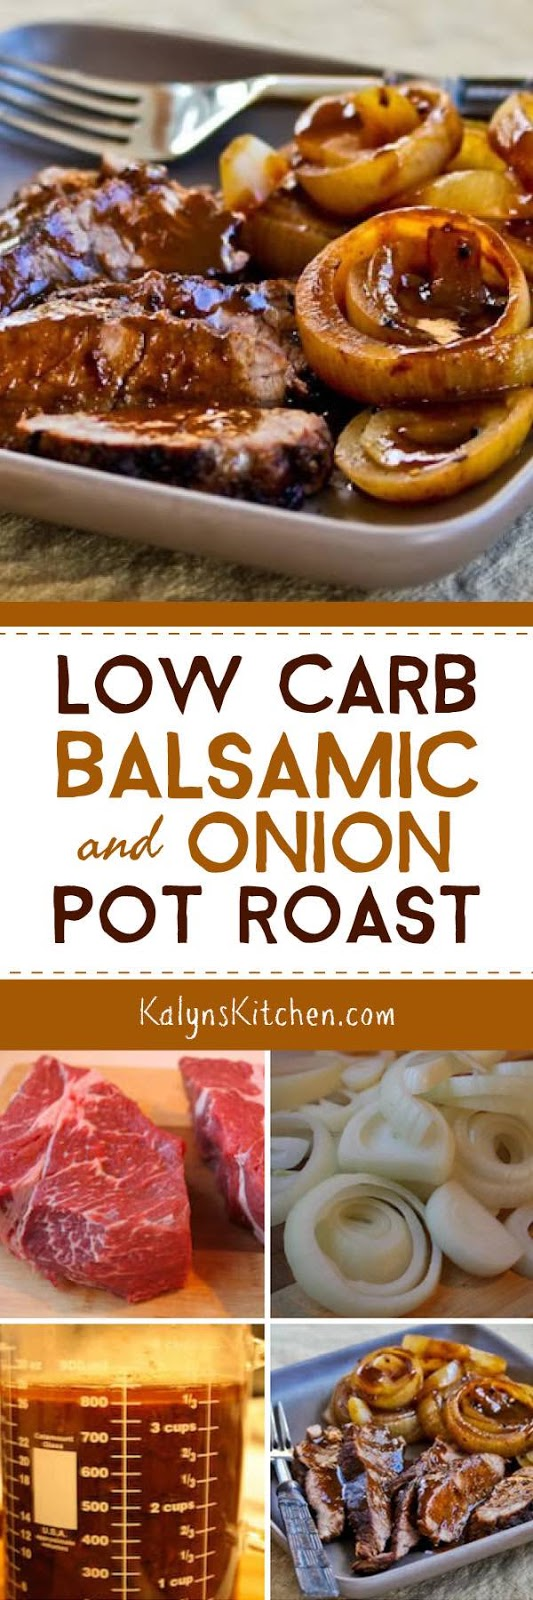 Make Pot Roast in a Crockpot and Low-Carb Balsamic and Onion Pot Roast ...